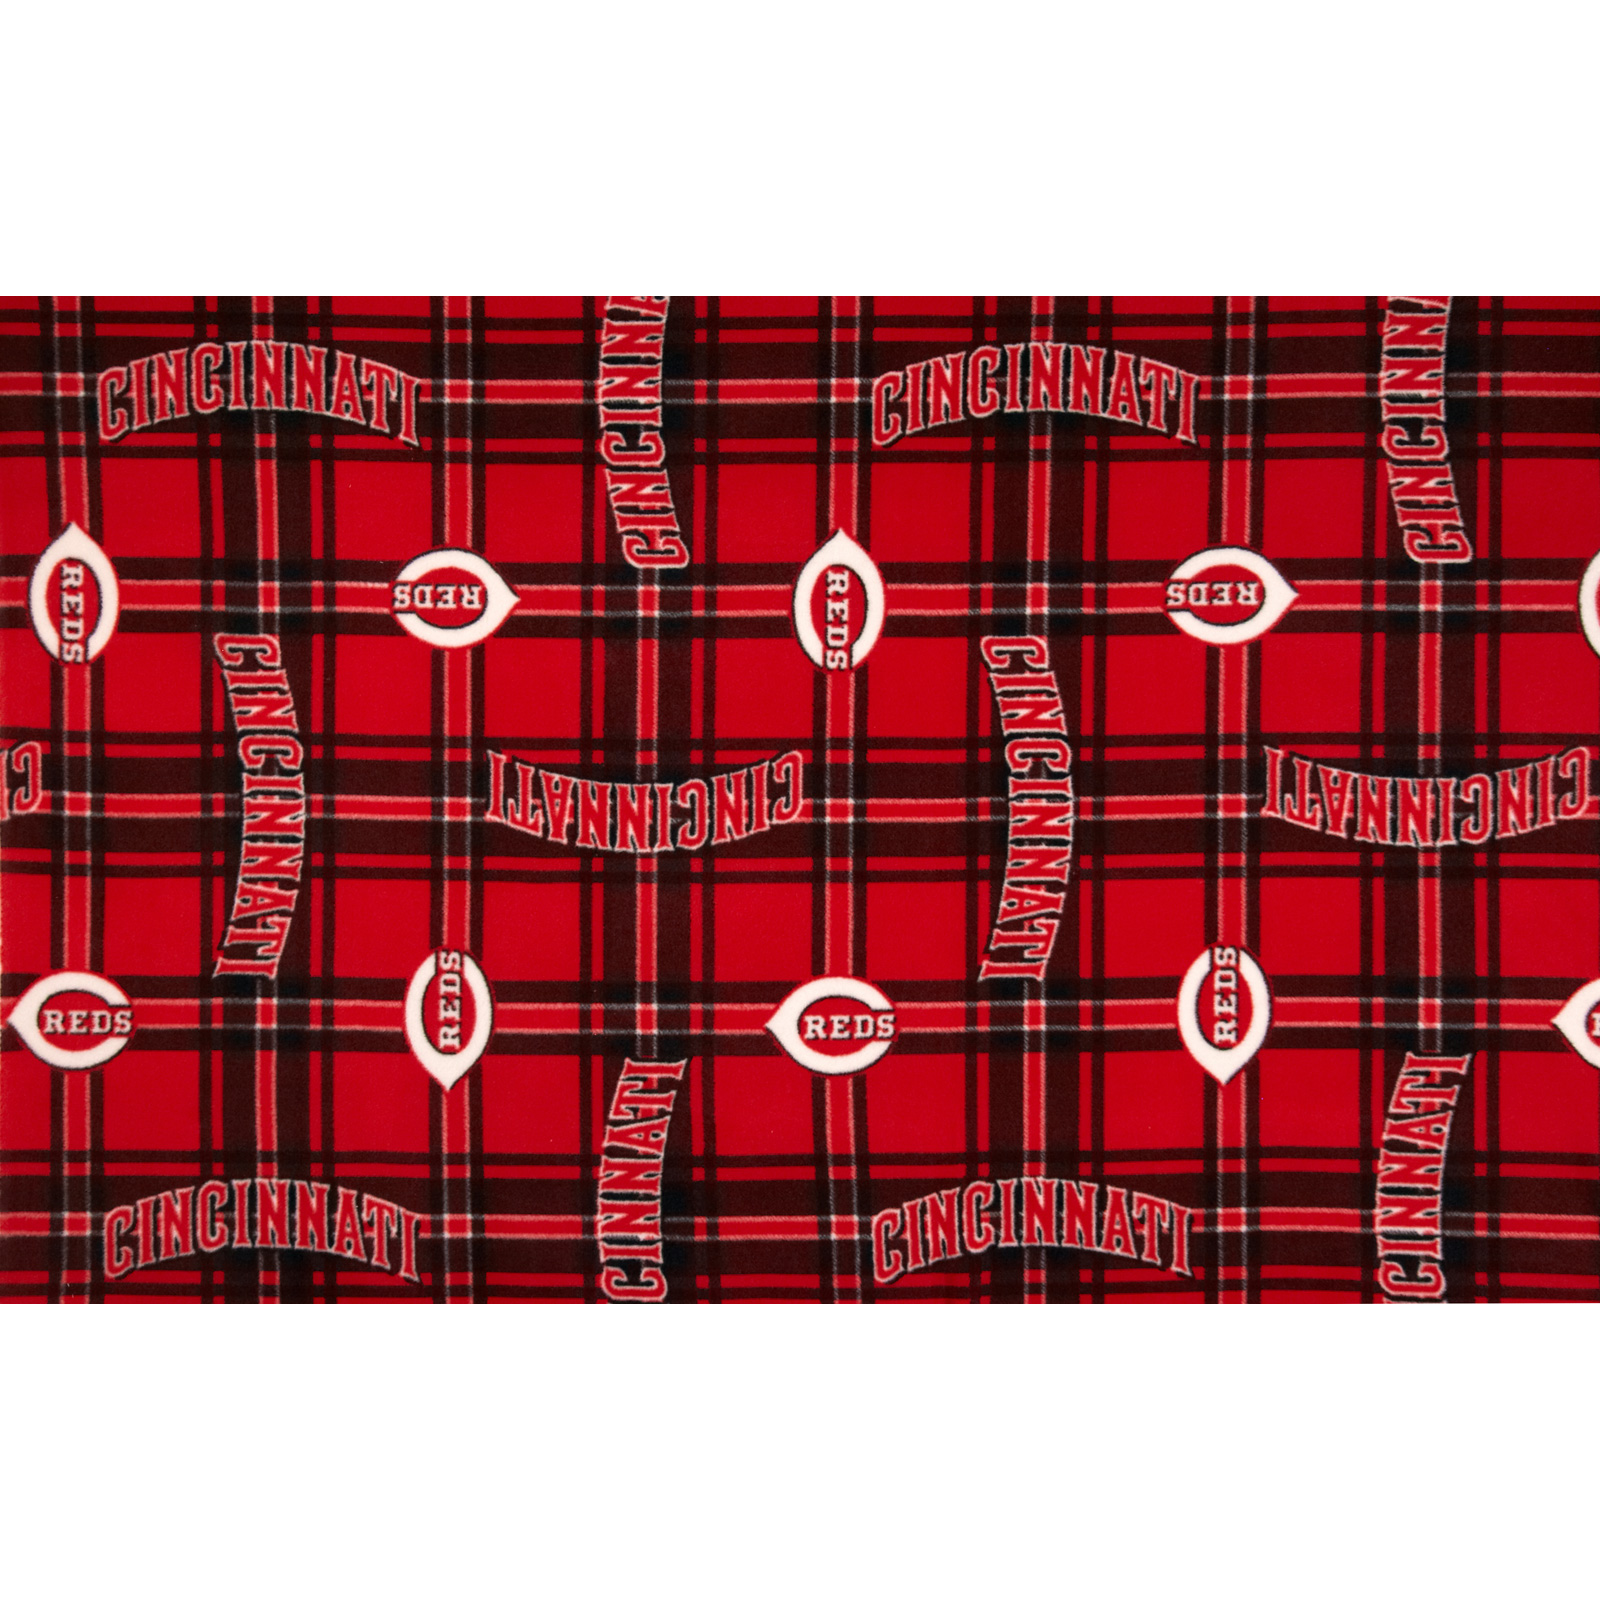 MLB Fleece Cincinnati Reds Plaid Red/Black Fabric